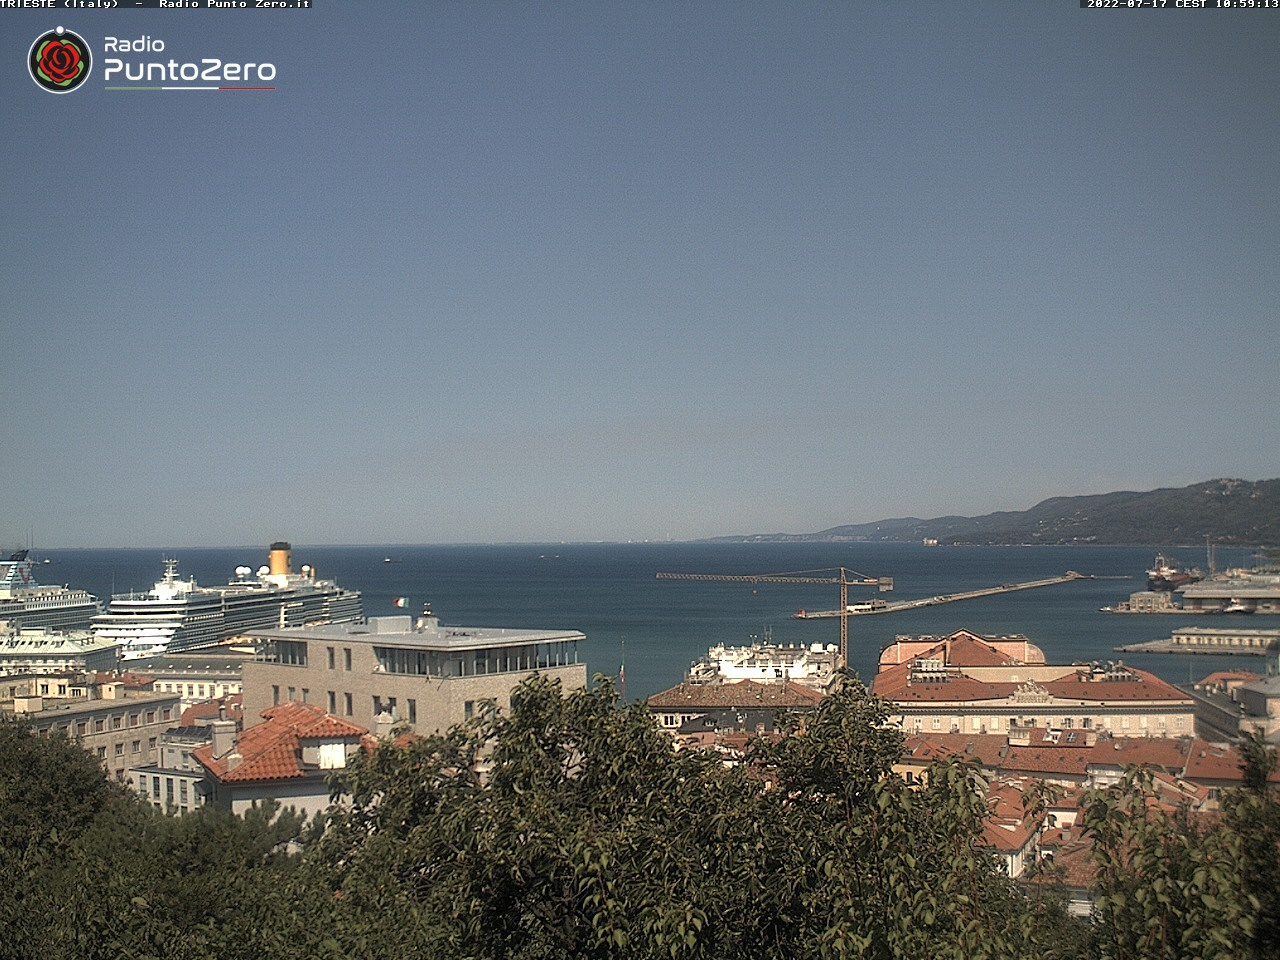 Webcam For The Port Of Trieste